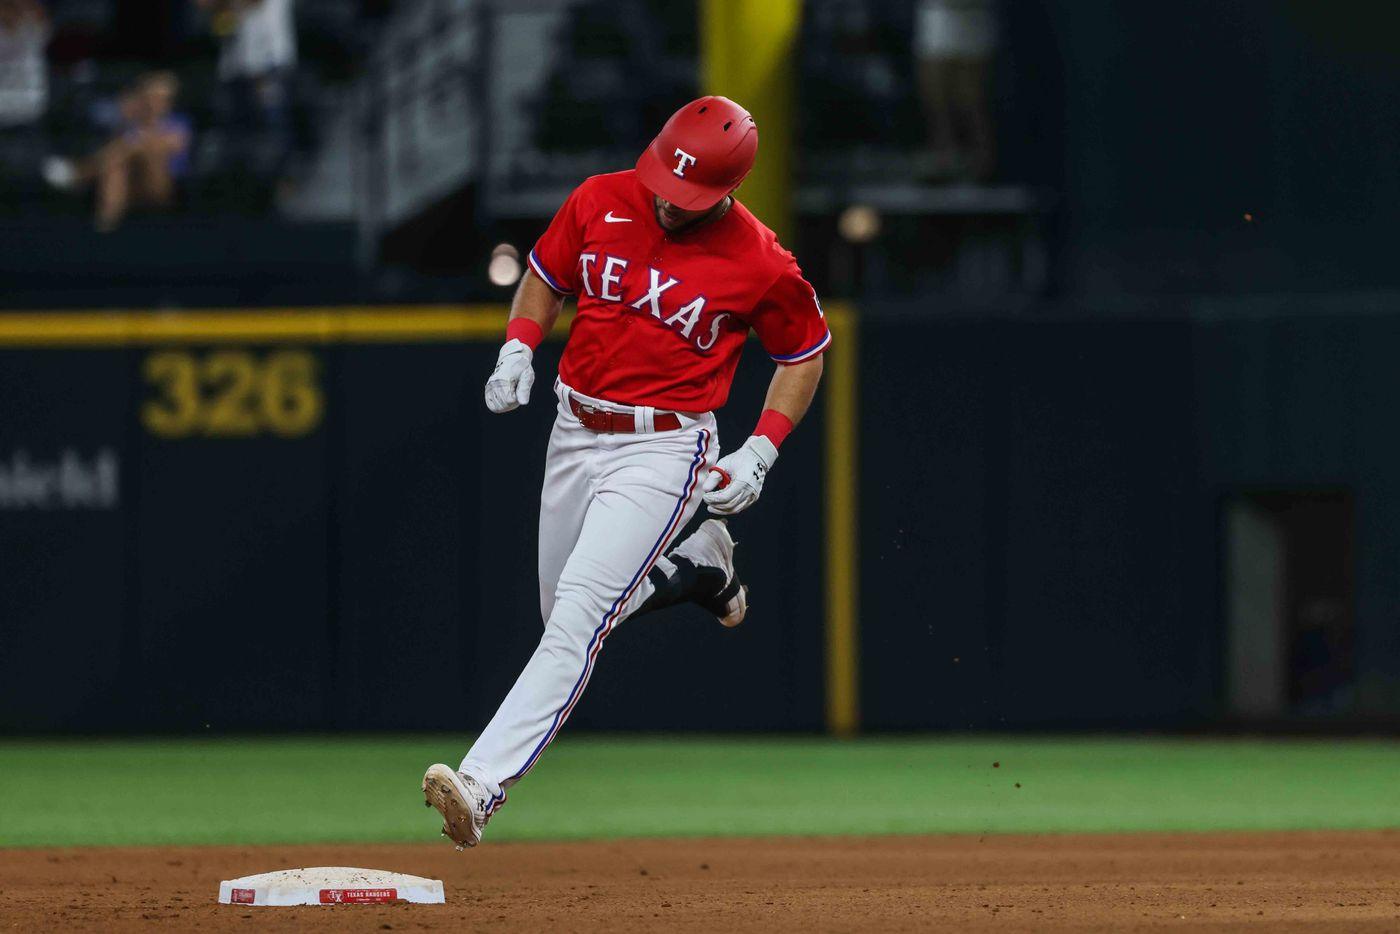 Texas Rangers Jason Martin (50) runs the bases after his home run in the seventh inning at Globe Life Field in Arlington, Texas, Friday, July 30, 2021. Seattle 8, Rangers 5. (Lola Gomez/The Dallas Morning News)